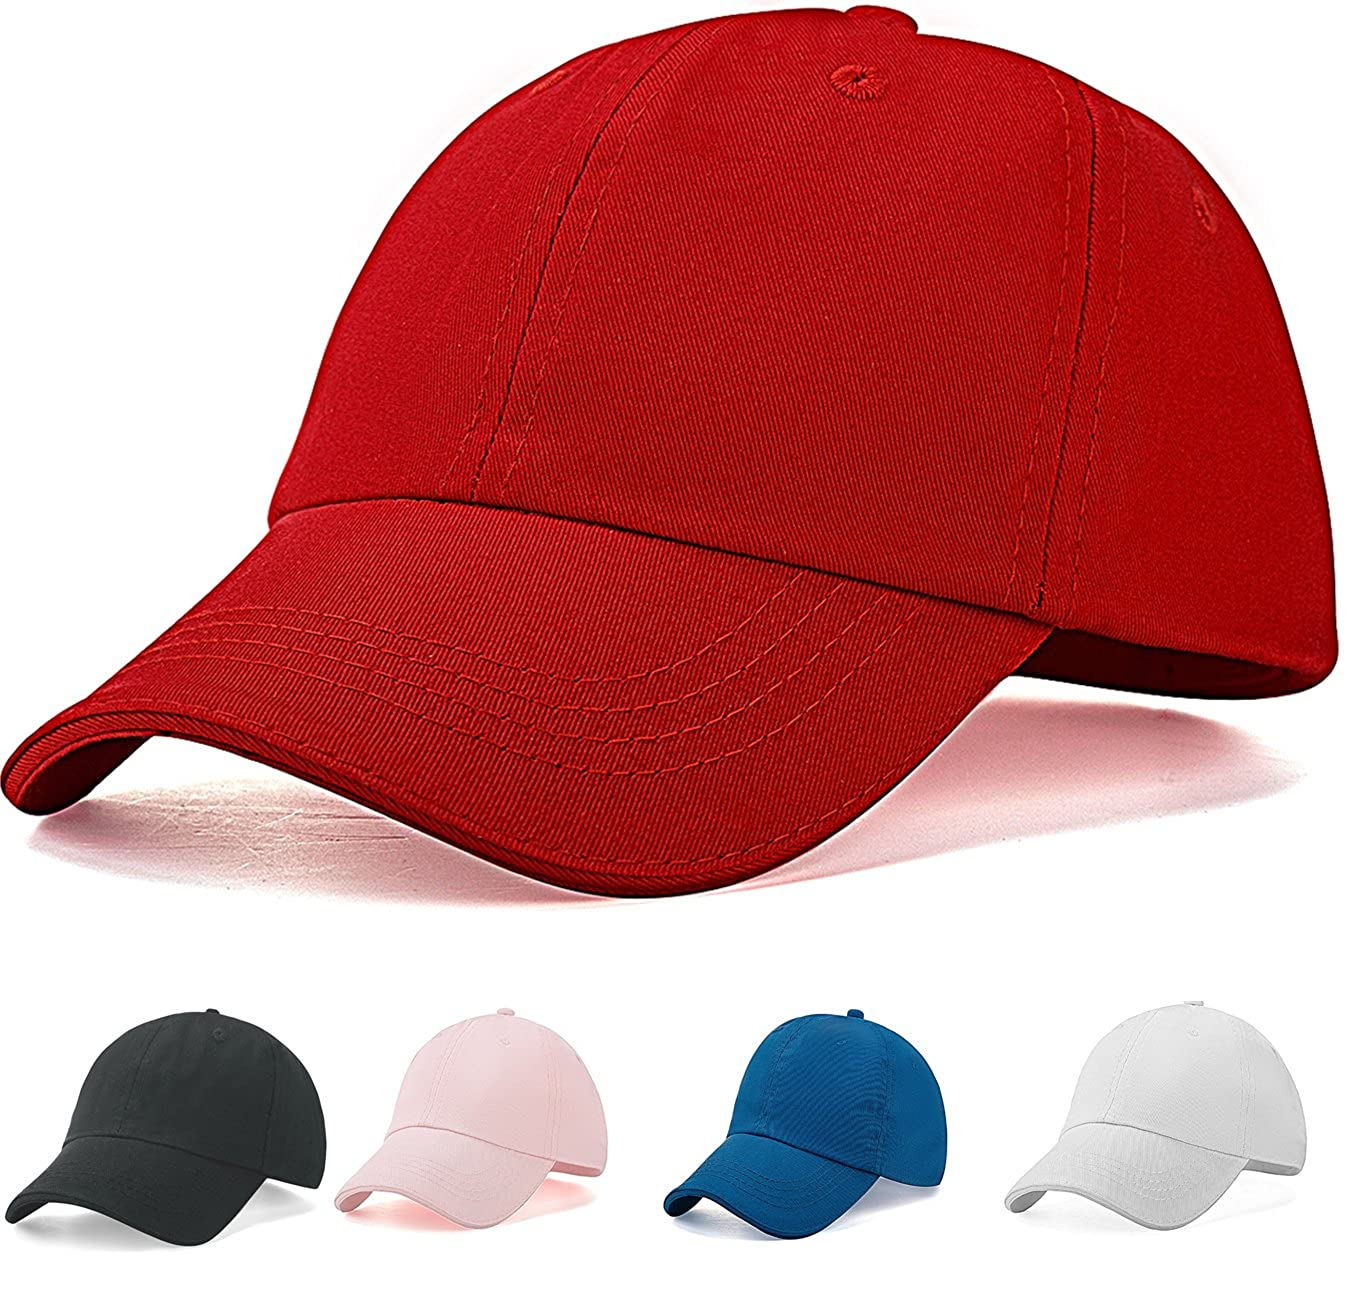 Kid Baseball Hats Girls - Unconstructed Hats Kids Sun Hats